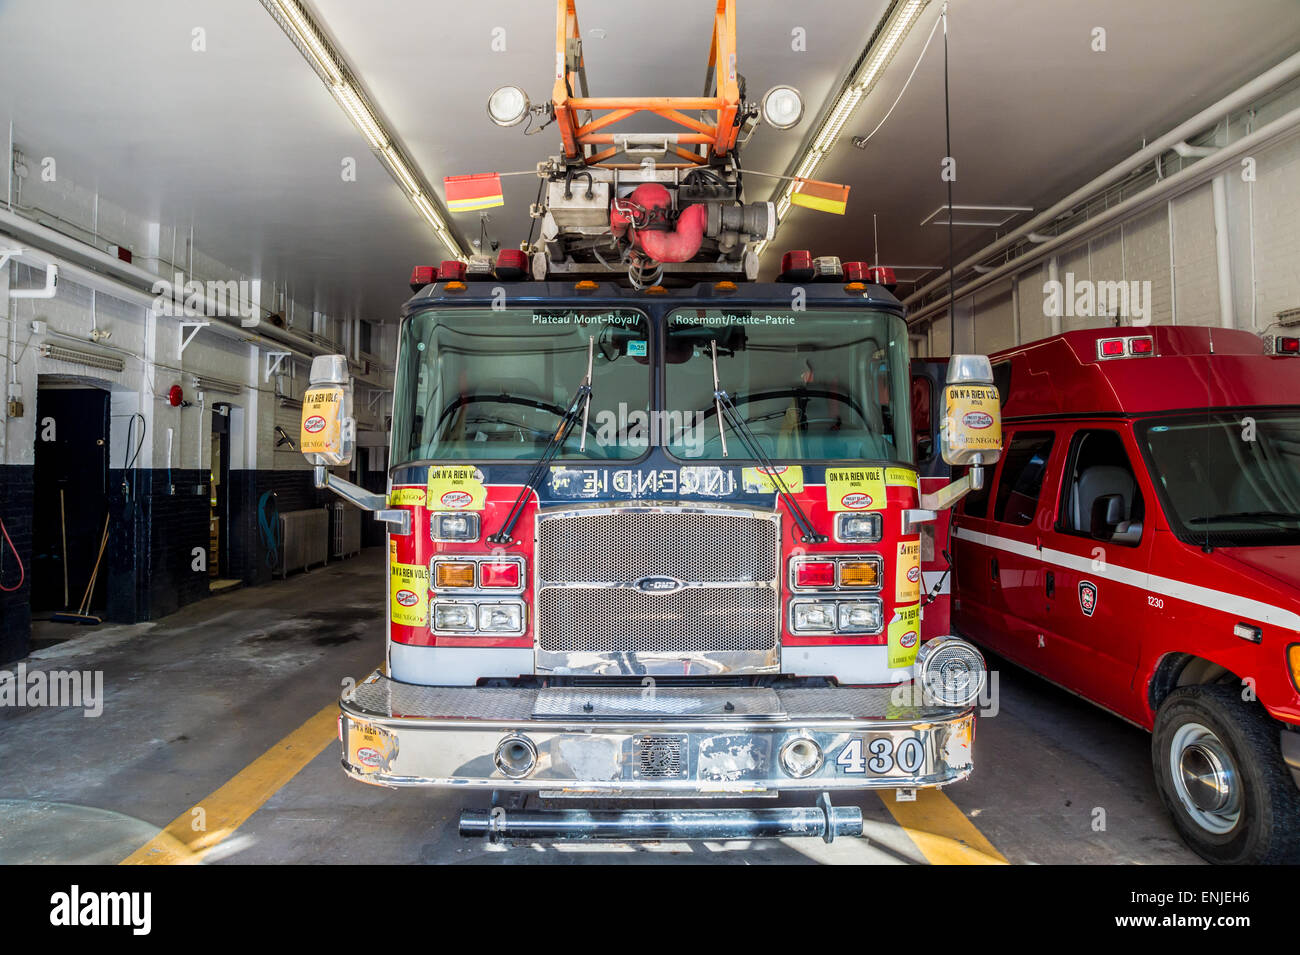 Firetruck in Montreal Plateau fire station, Canada - Stock Image